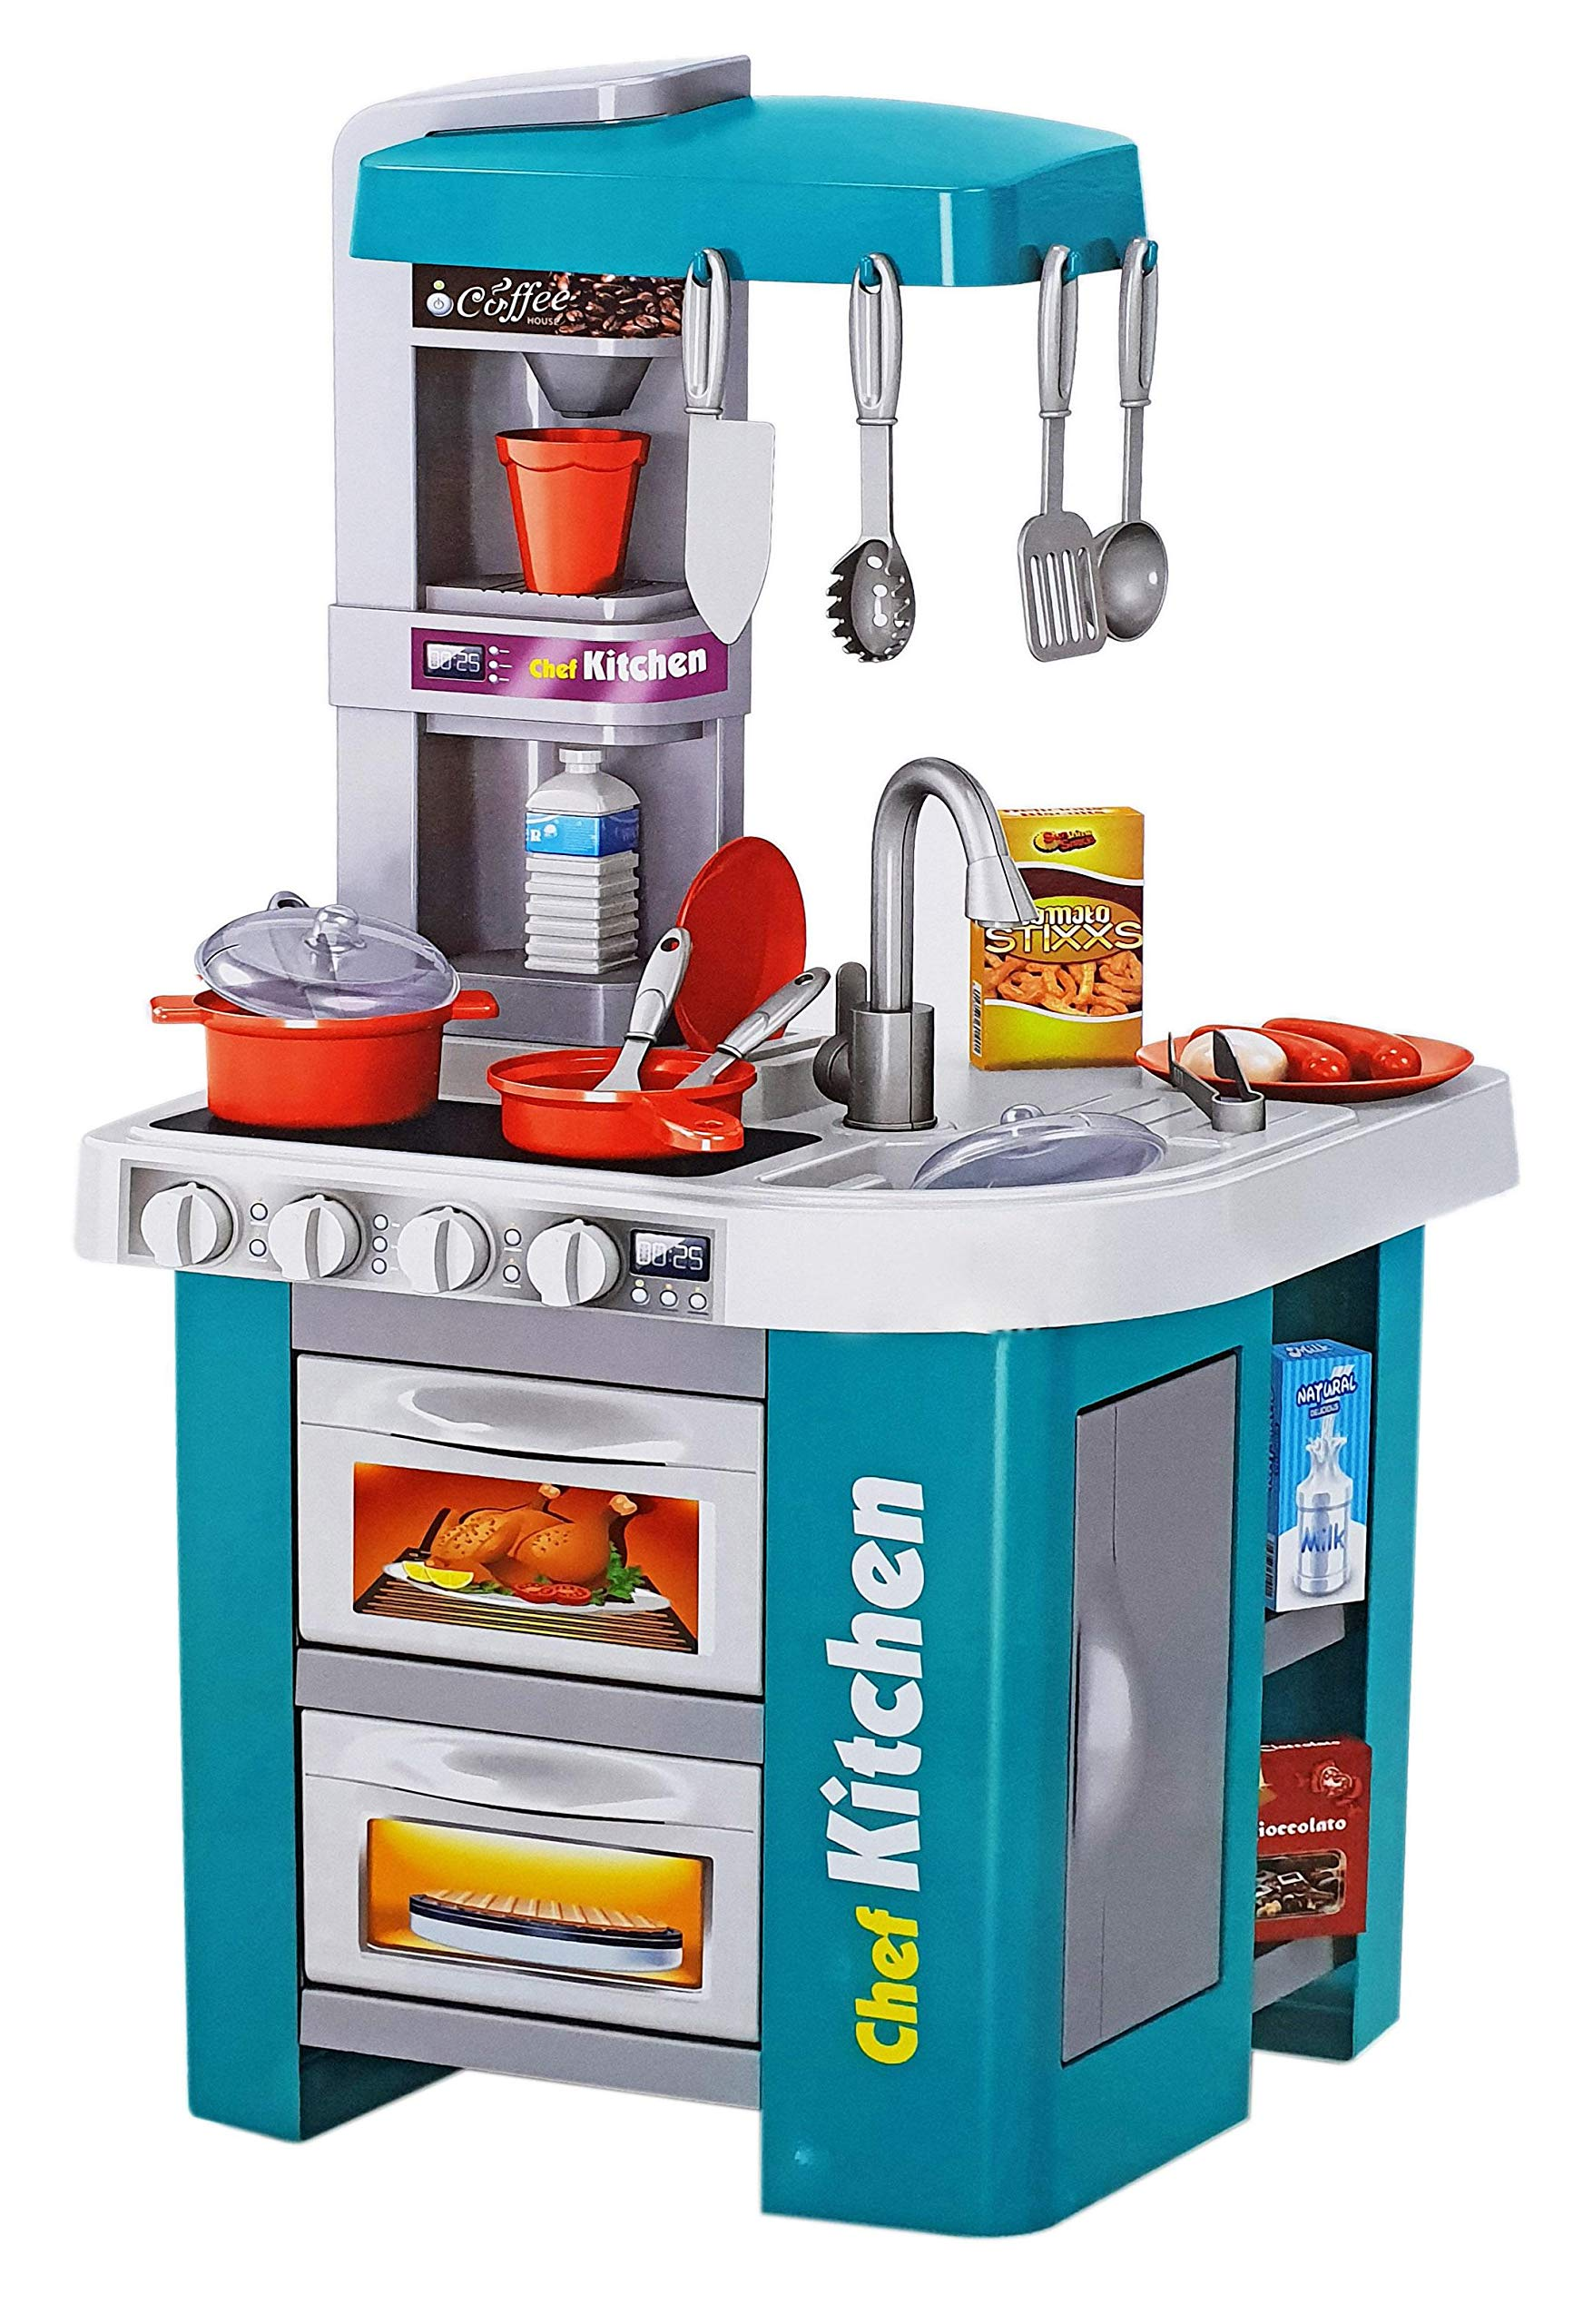 Talented Chef Kitchen Set Role Play Sink With Running Water Stove With Fire Light And Sound Playset Buy Online At Best Price In Ksa Souq Is Now Amazon Sa Toys